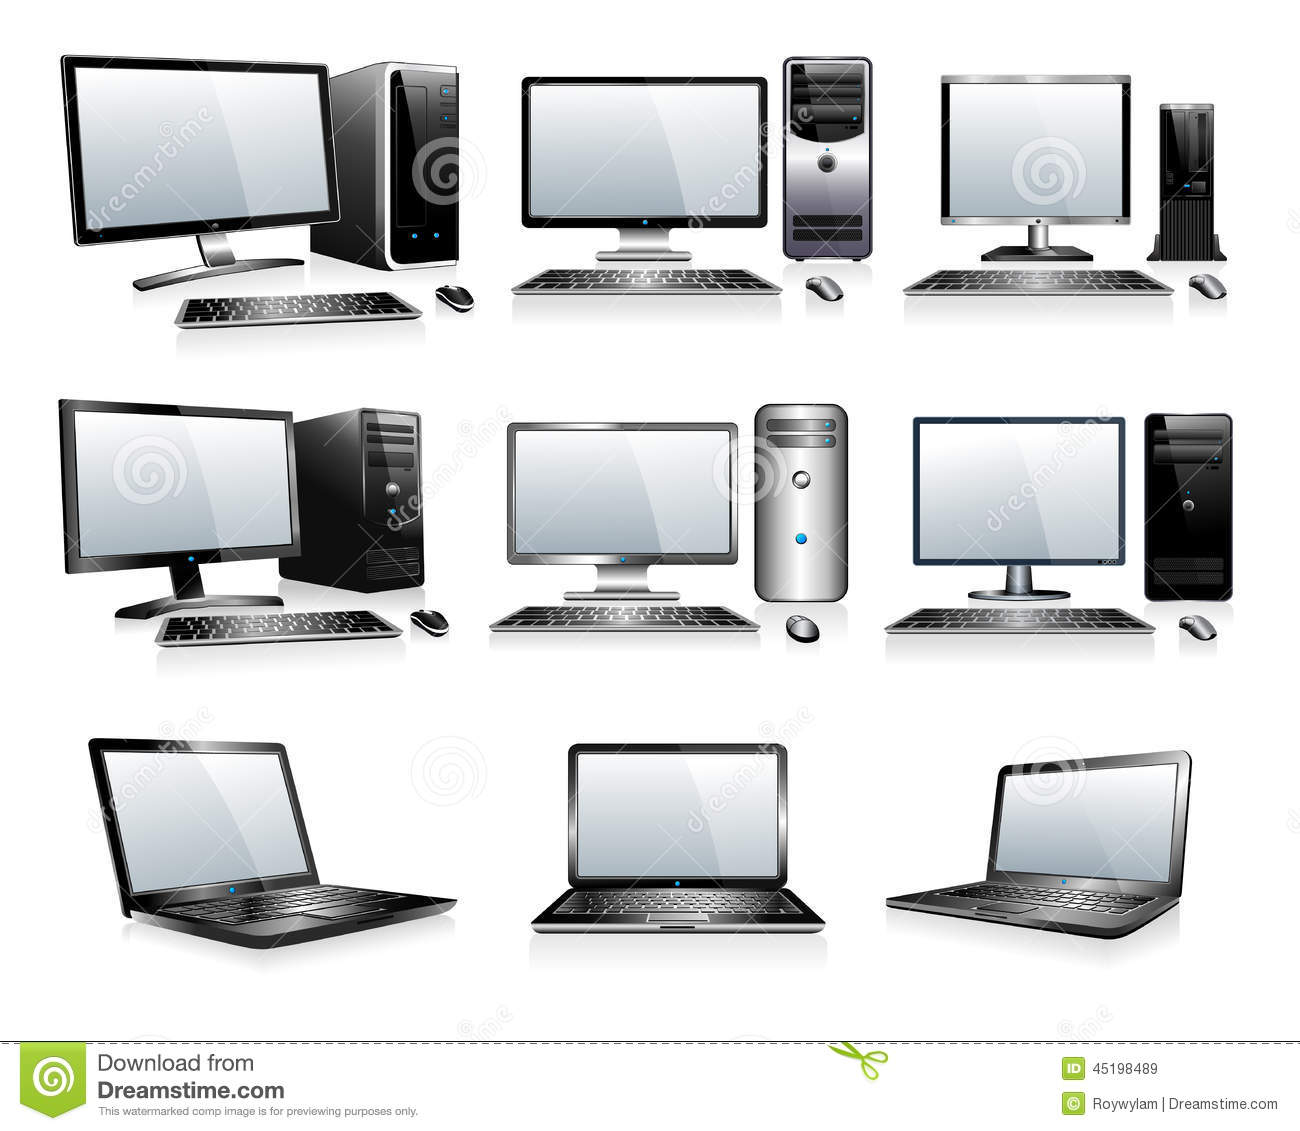 Computertechnologieelektronika - Computers, Desktops, PC